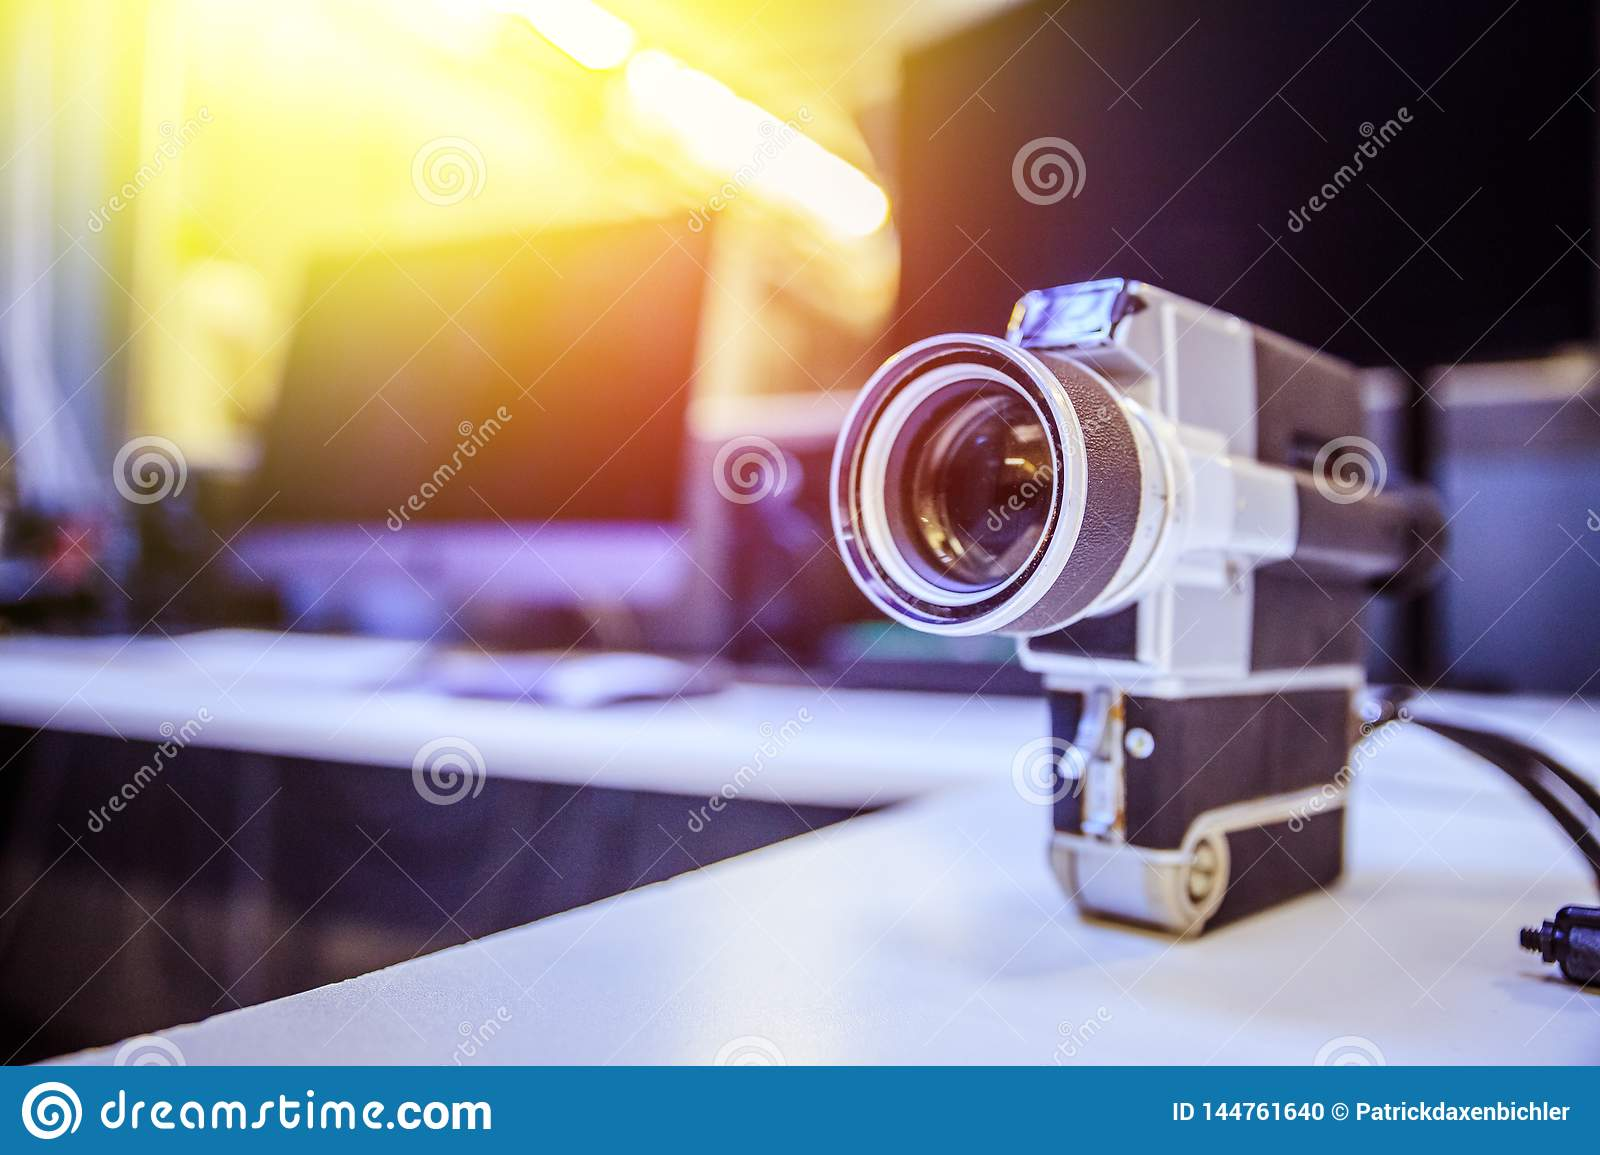 Movie Production Vintage Old Movie Camera On A Desk Cutting Room In The Background Sunshine Photo Stock Image Du Room Production 144761640